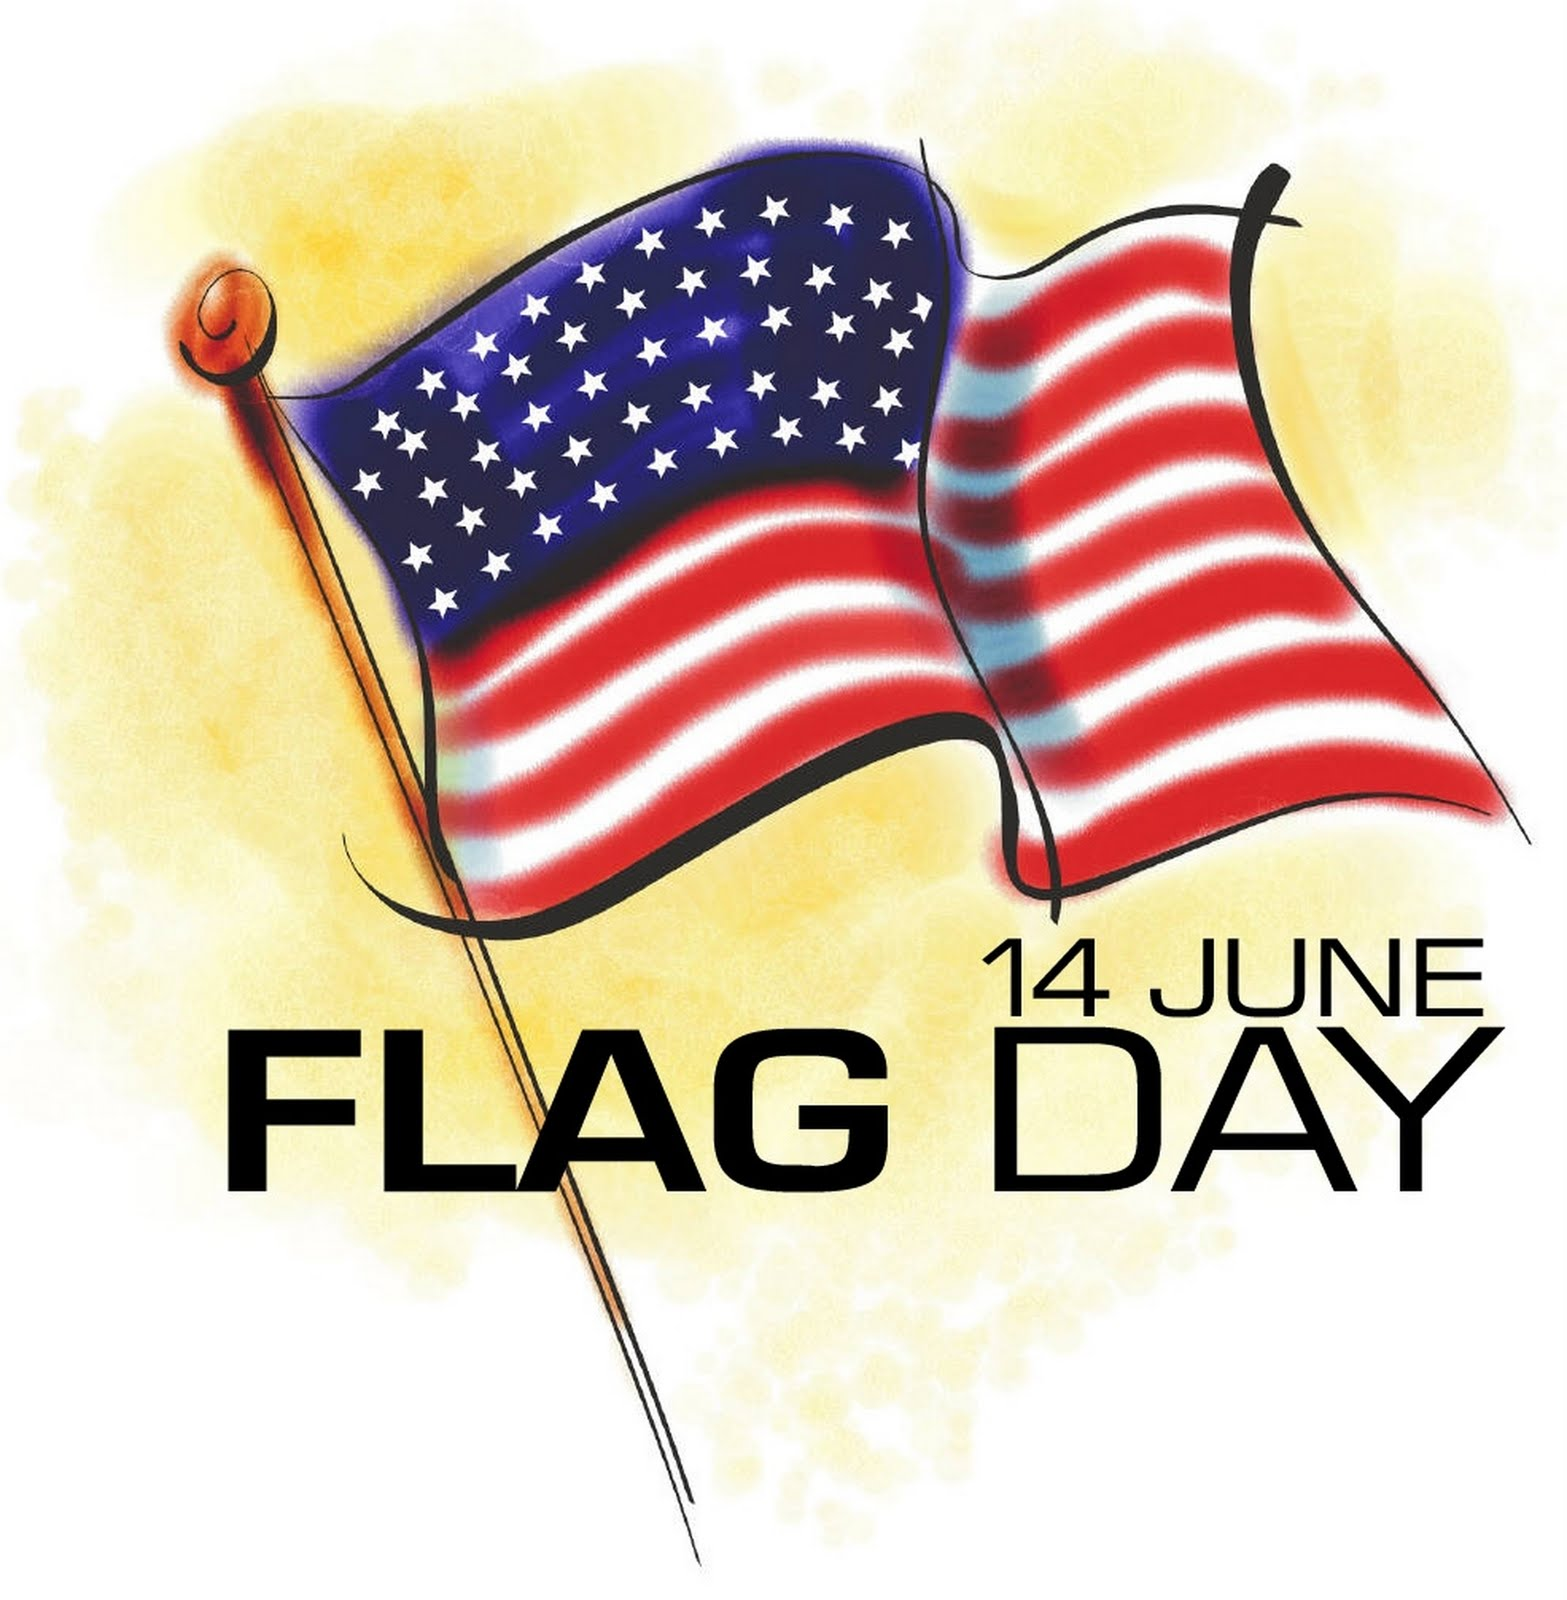 Station . 2017 clipart flag day